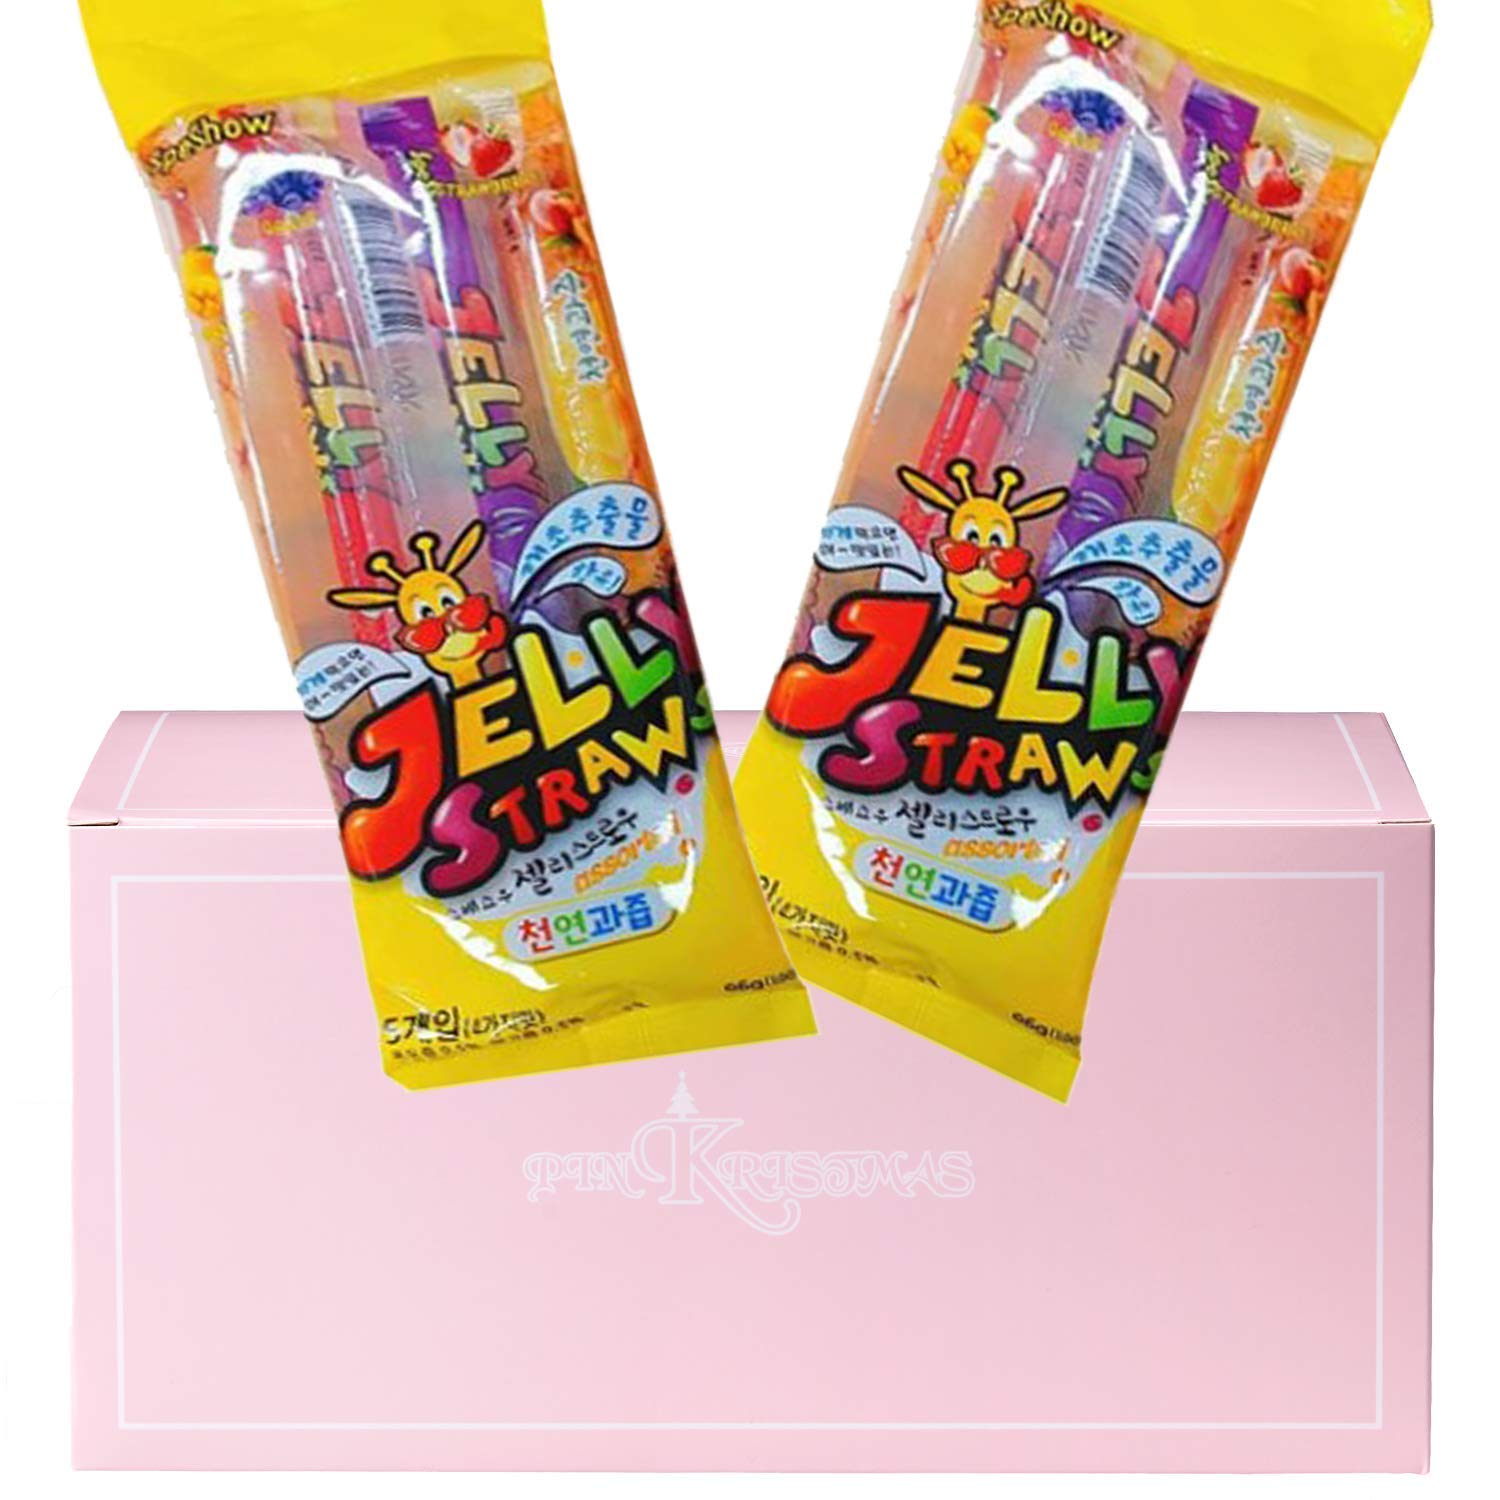 Jelly Straws Pack of 2 in a PINKRISTMAS Gift Box - Strawberry Peach Mango Grape Flavors Colorless Jelly Noodles Gummies